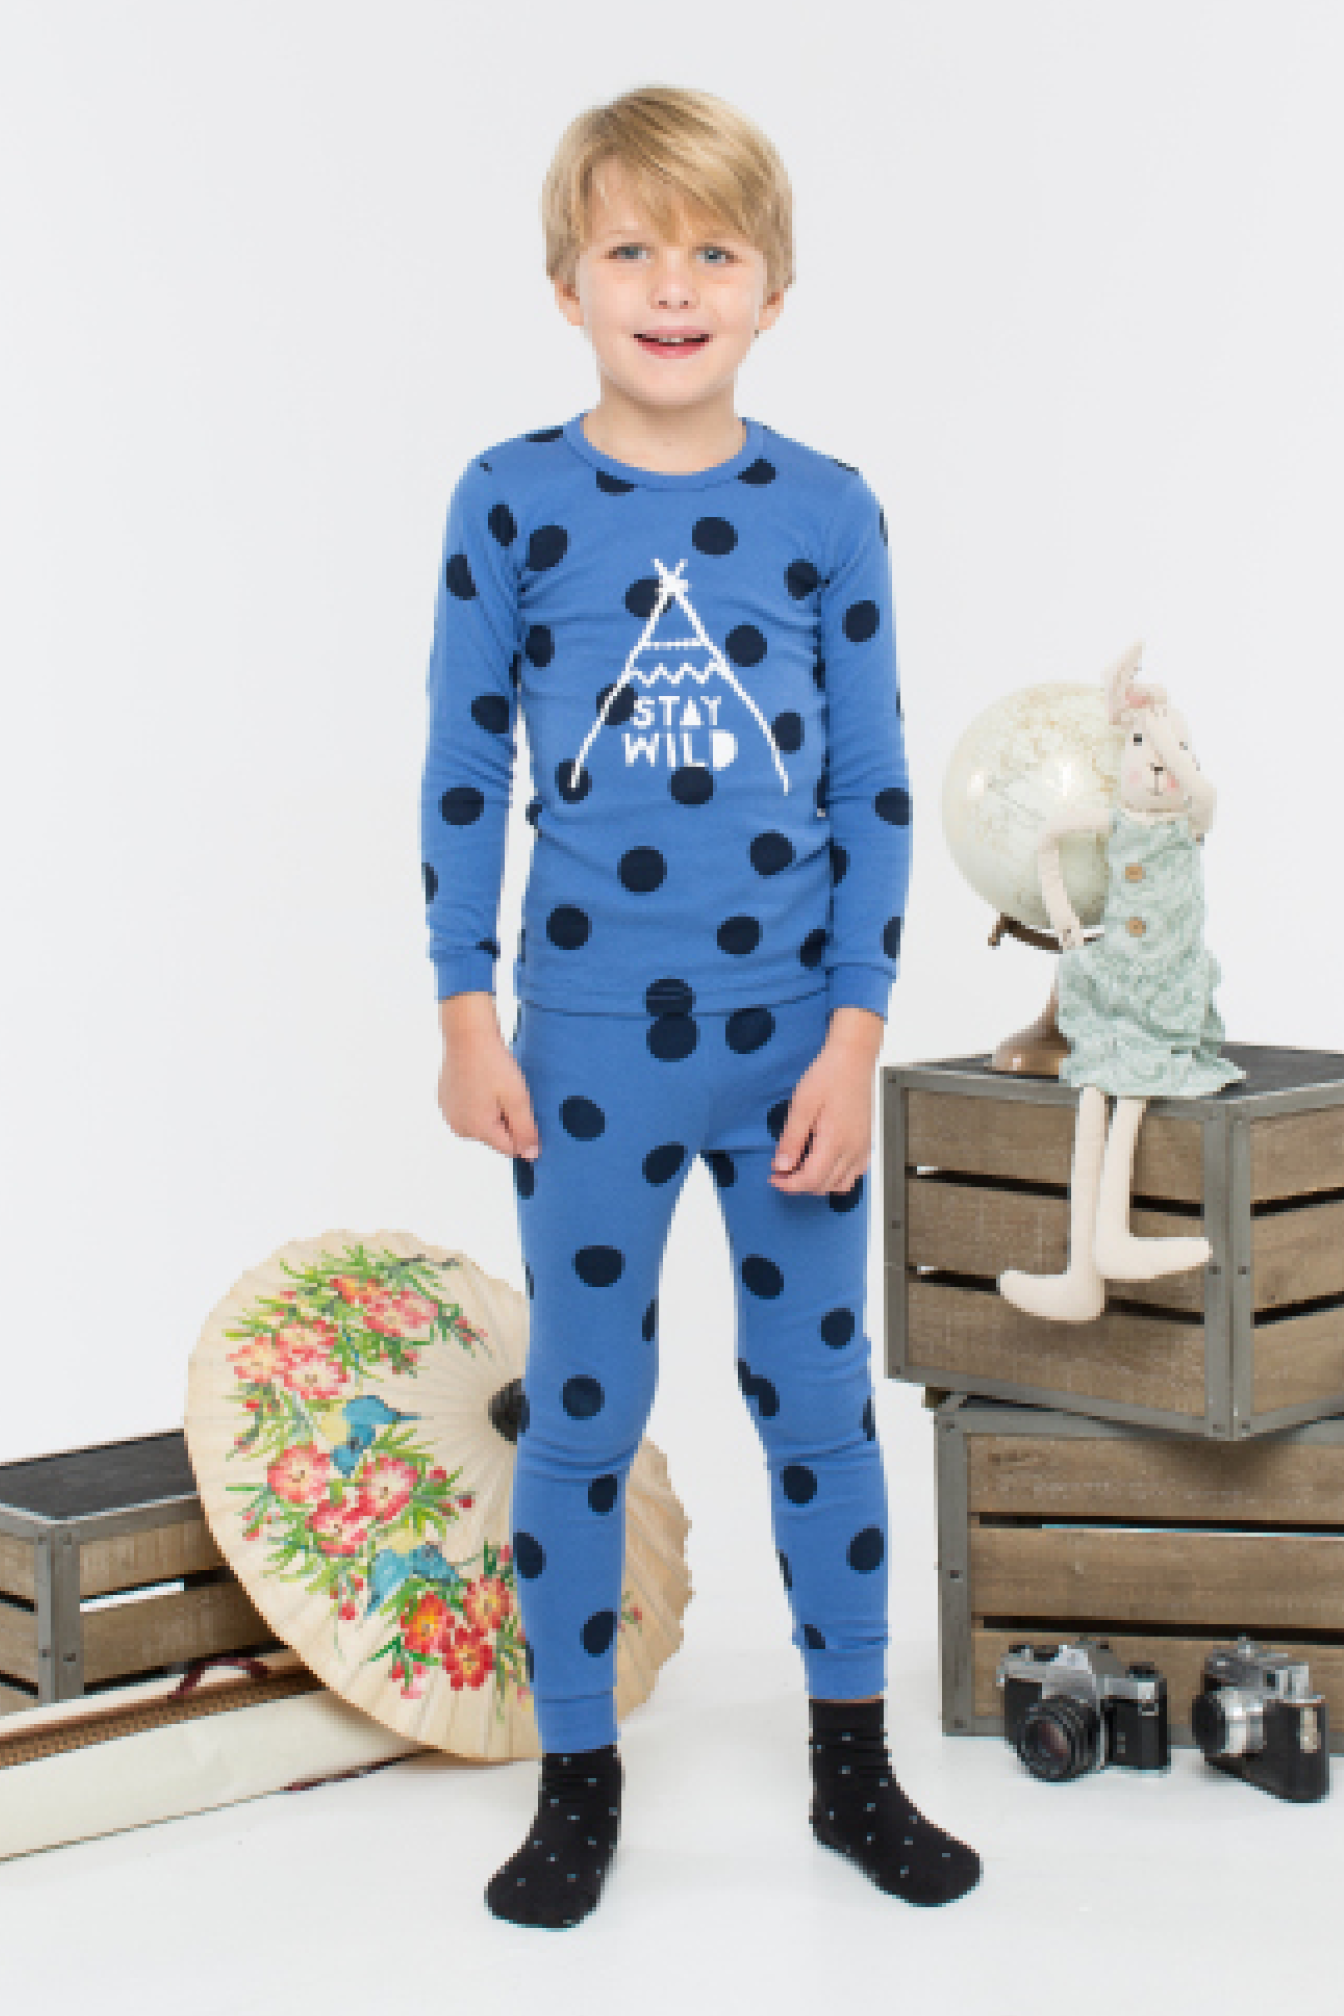 30s Cotton Count - Lightest Pajamas - Stay Wild Child (Blue)